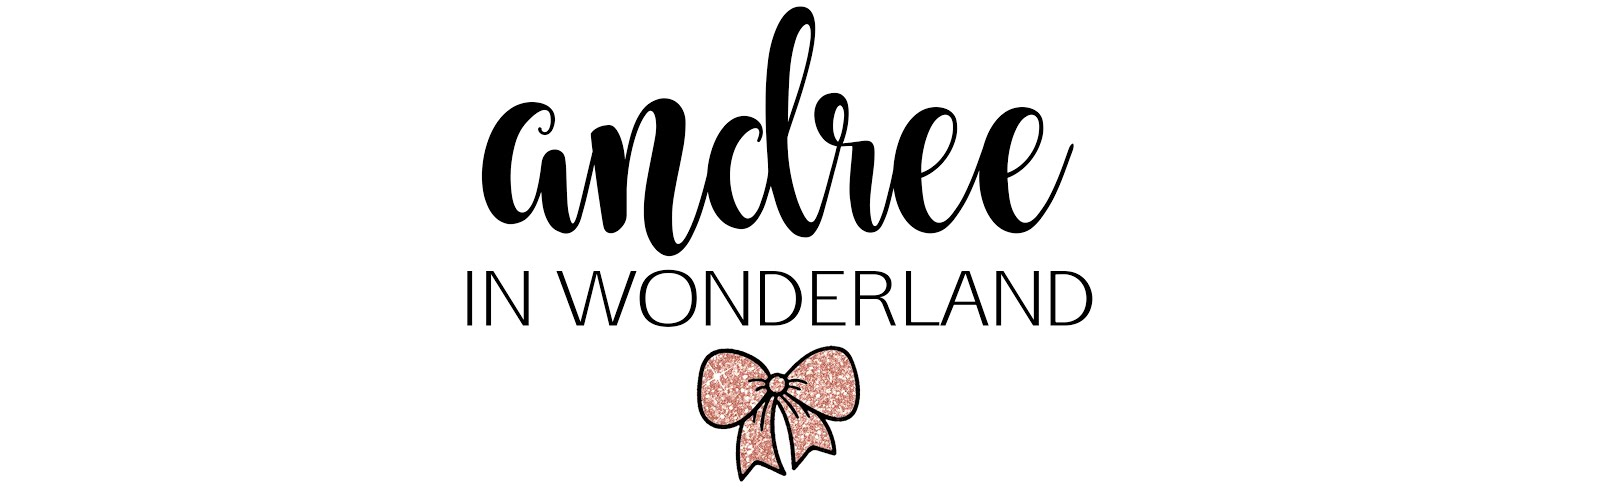 Andree in Wonderland